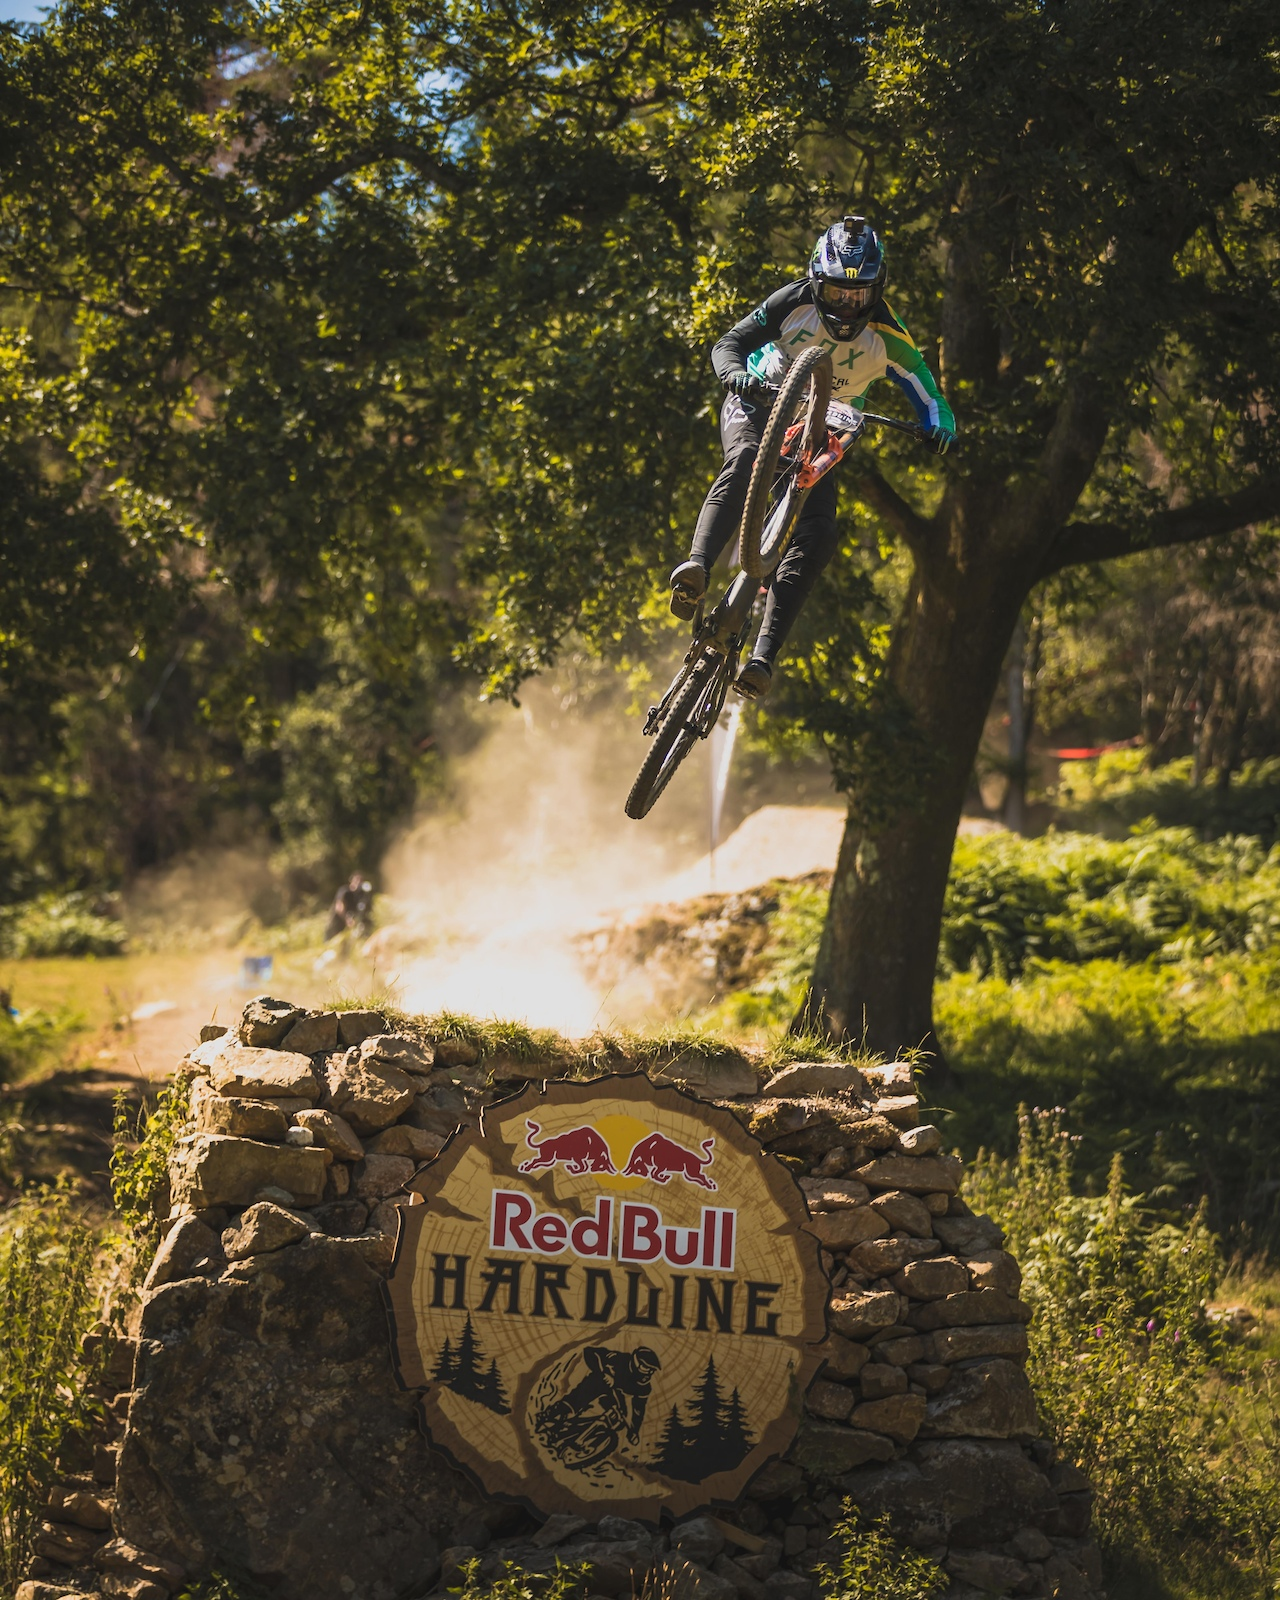 Theo Erlangsen Sending it on the finish straight a respectable dabut appearance for Theo taking home a top 10 finish.